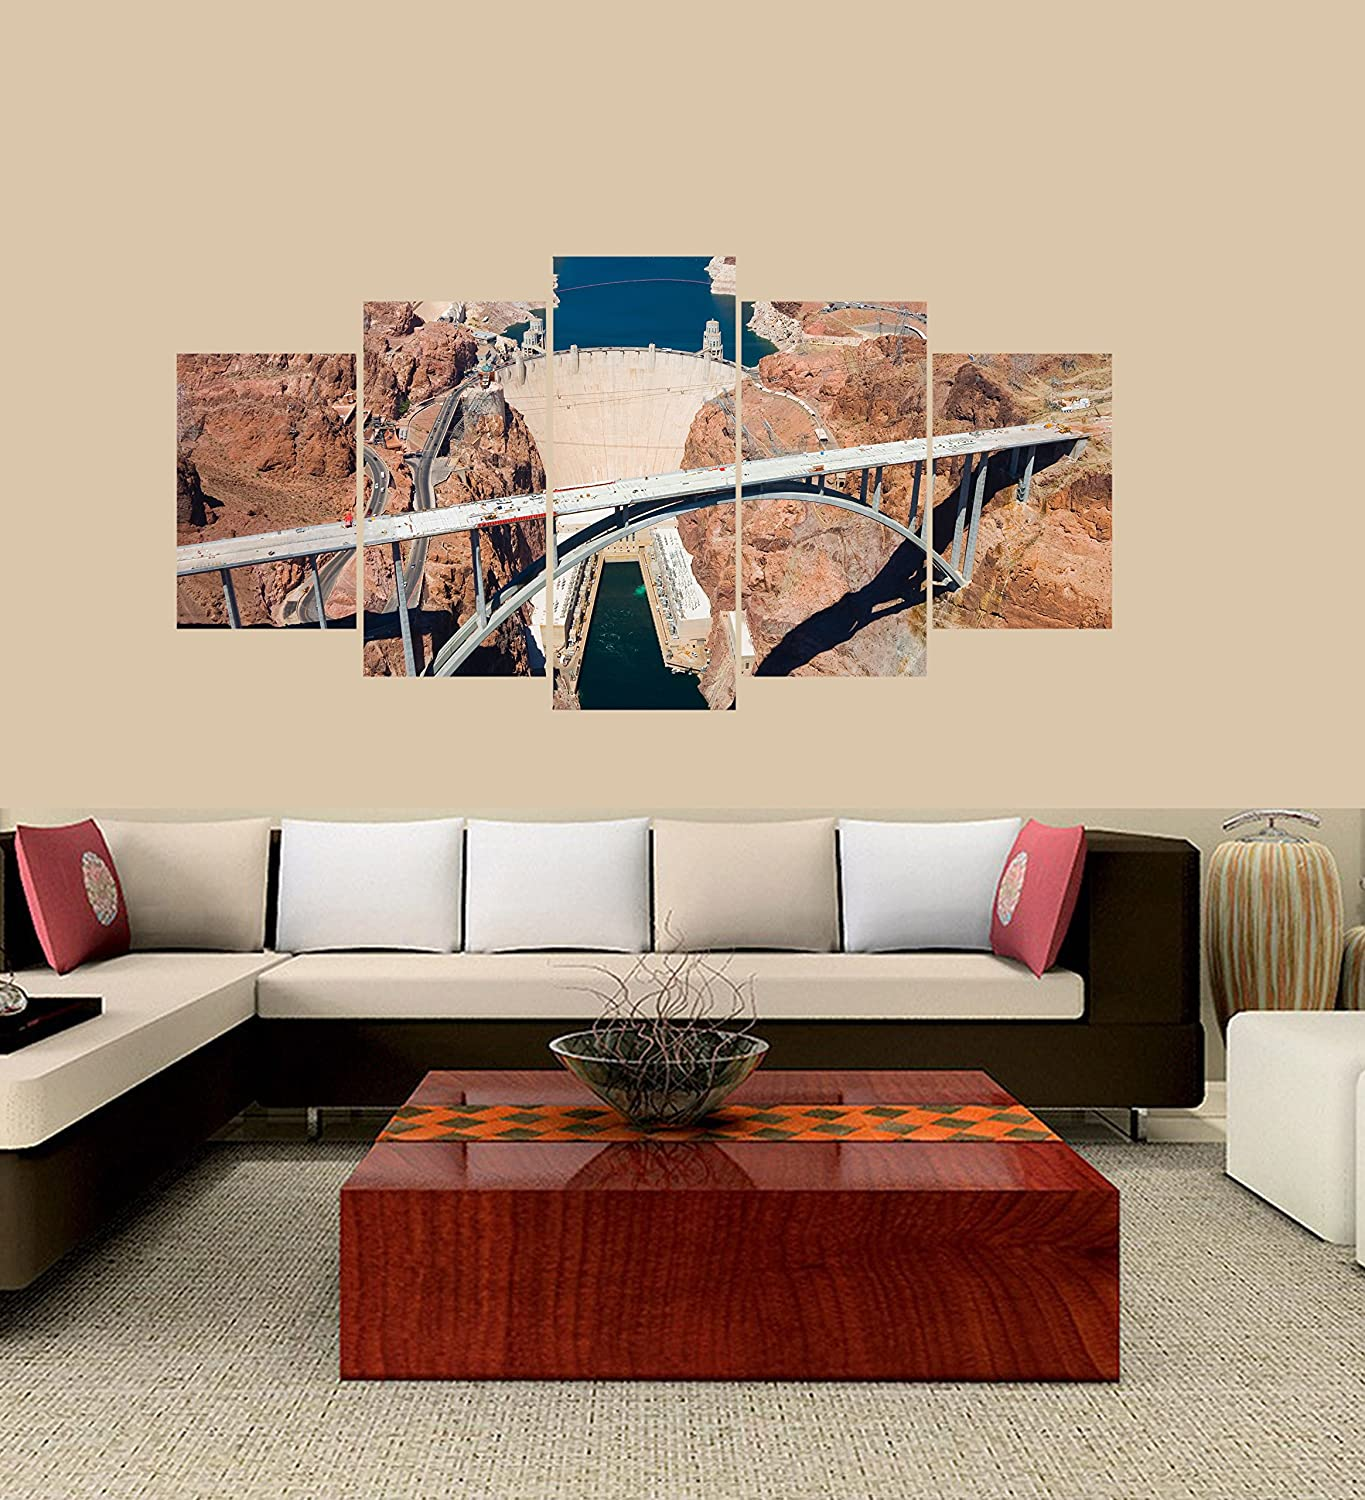 PEACOCK JEWELS [Medium] Premium Quality Canvas Printed Wall Art Poster 5 Pieces / 5 Panel Wall Decor Hoover Dam Bridge Painting, Home Decor Pictures - with Wooden Frame